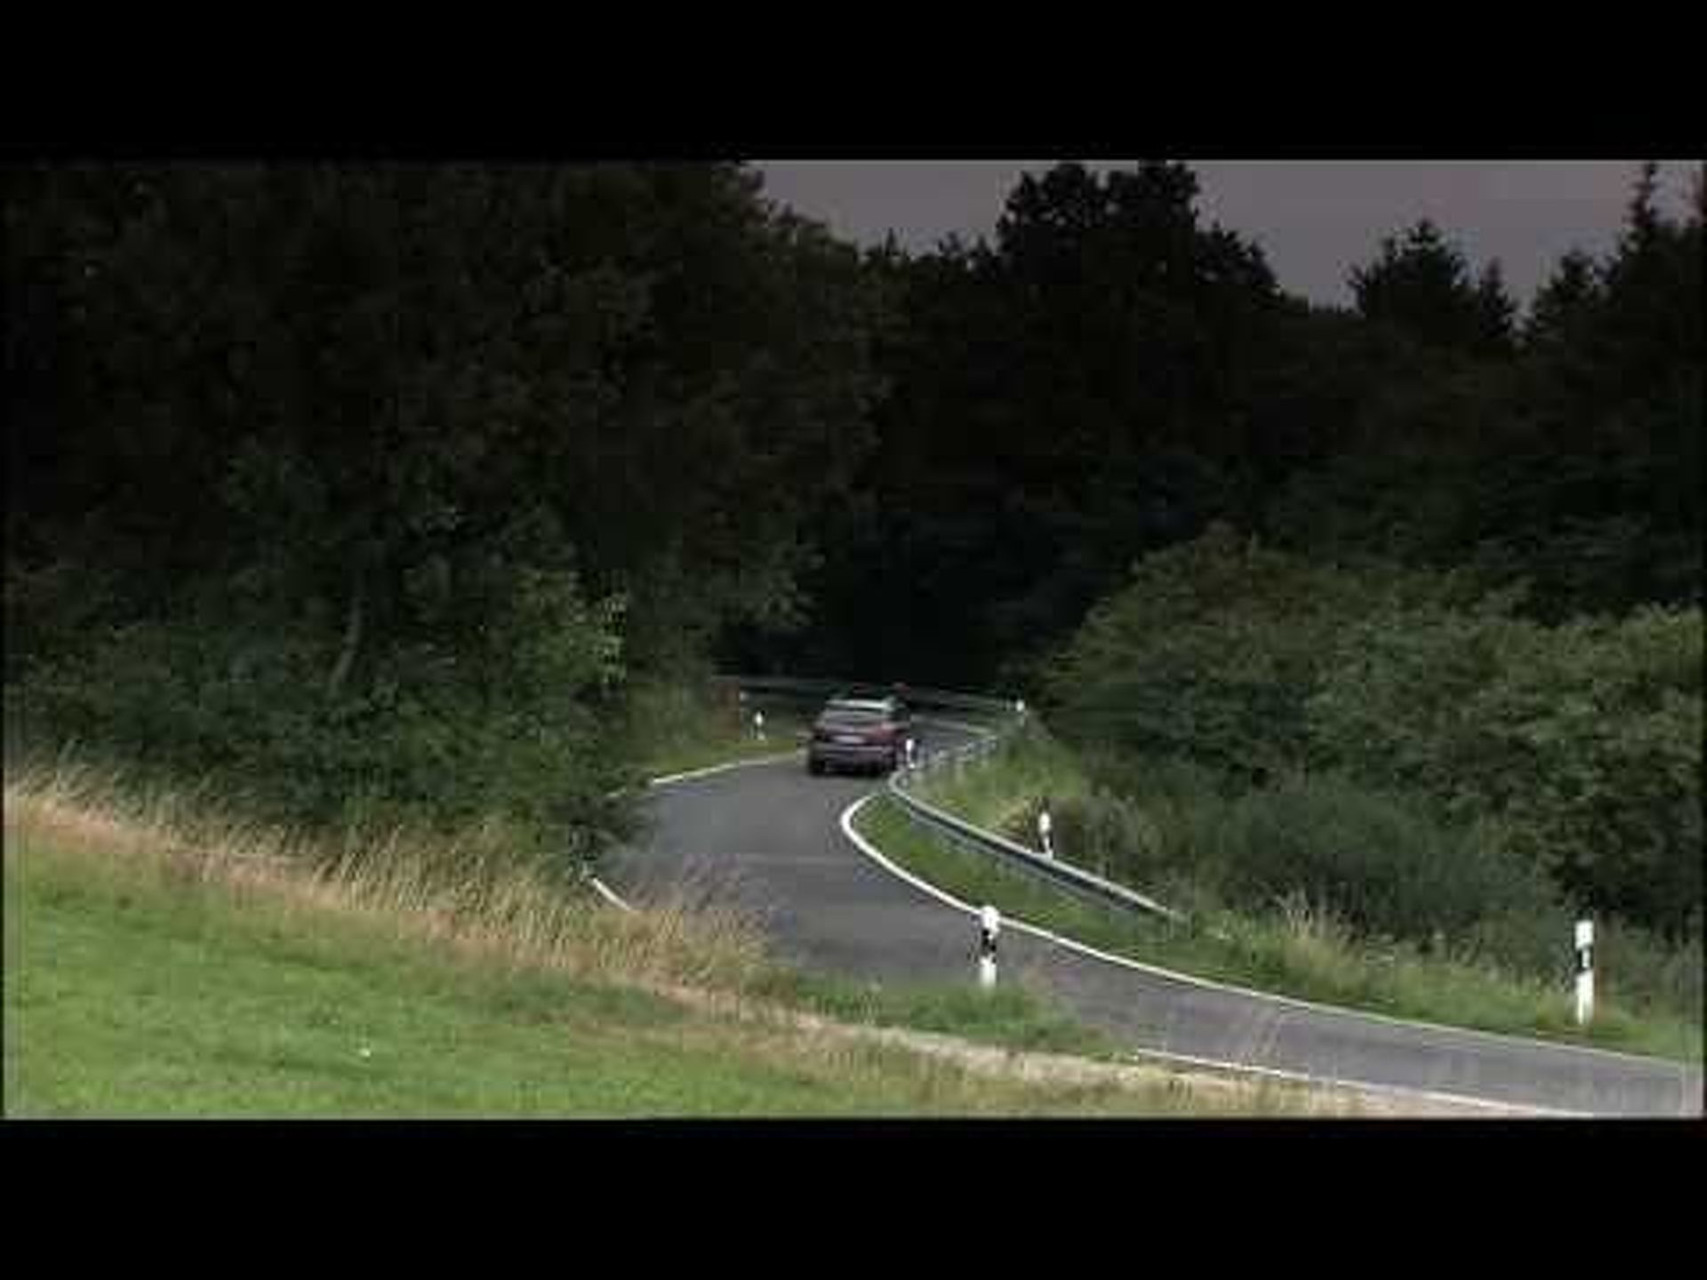 2011 Audi Q7 V12 Driving Footage